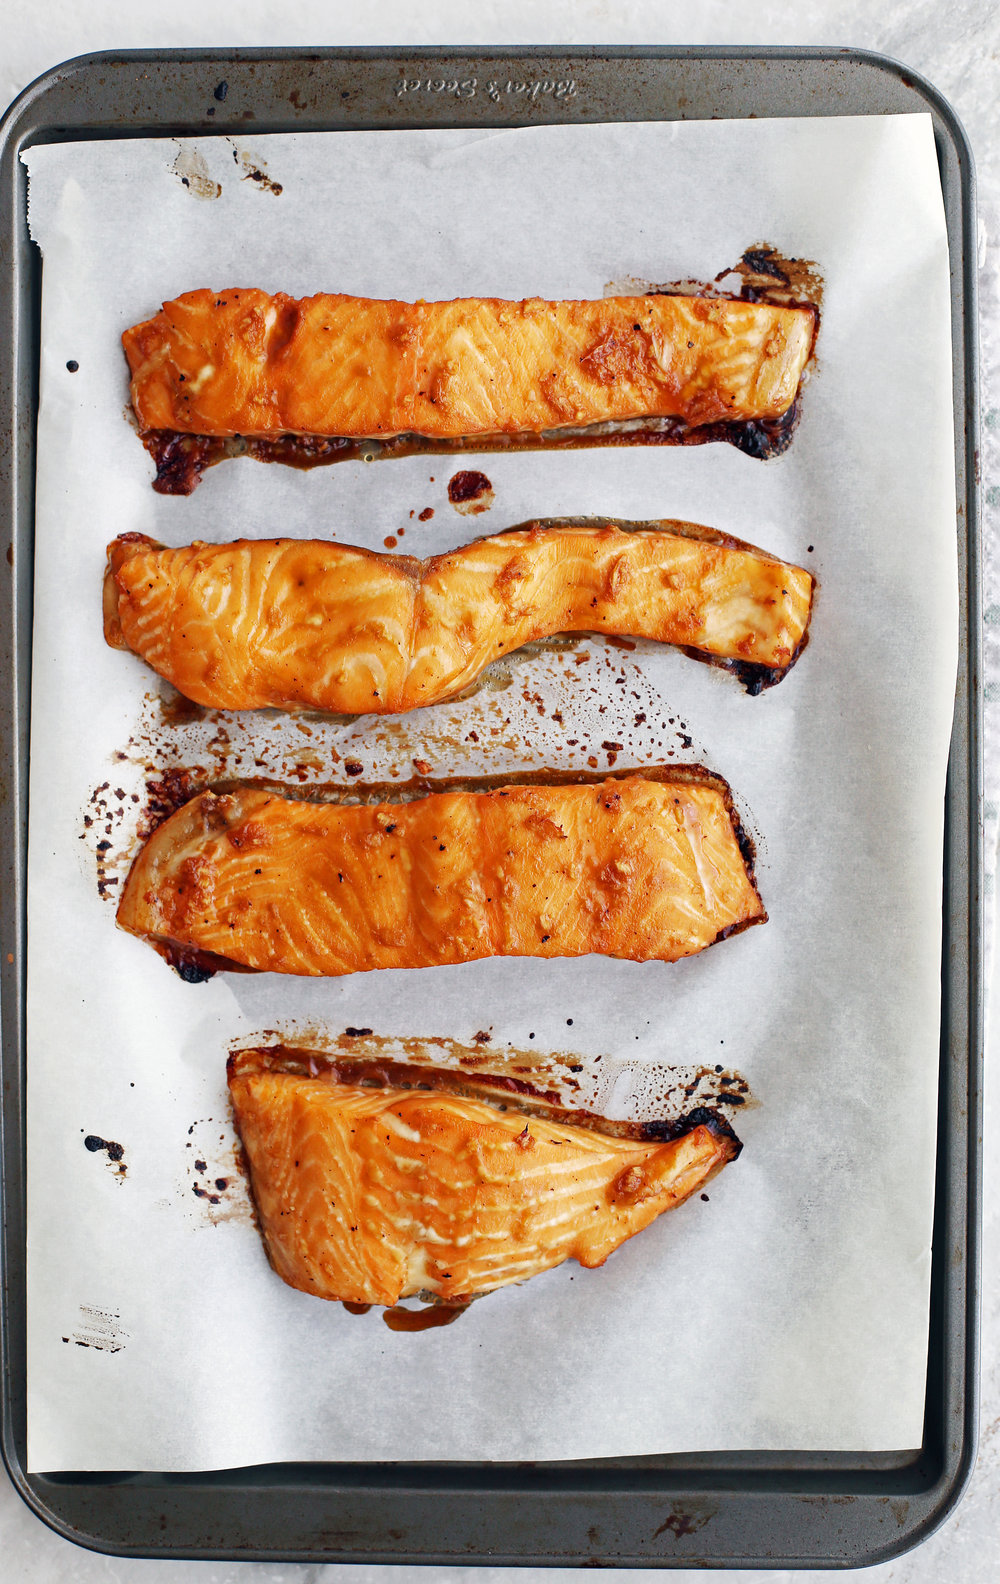 Four maple-soy baked salmon fillets on a baking sheet.